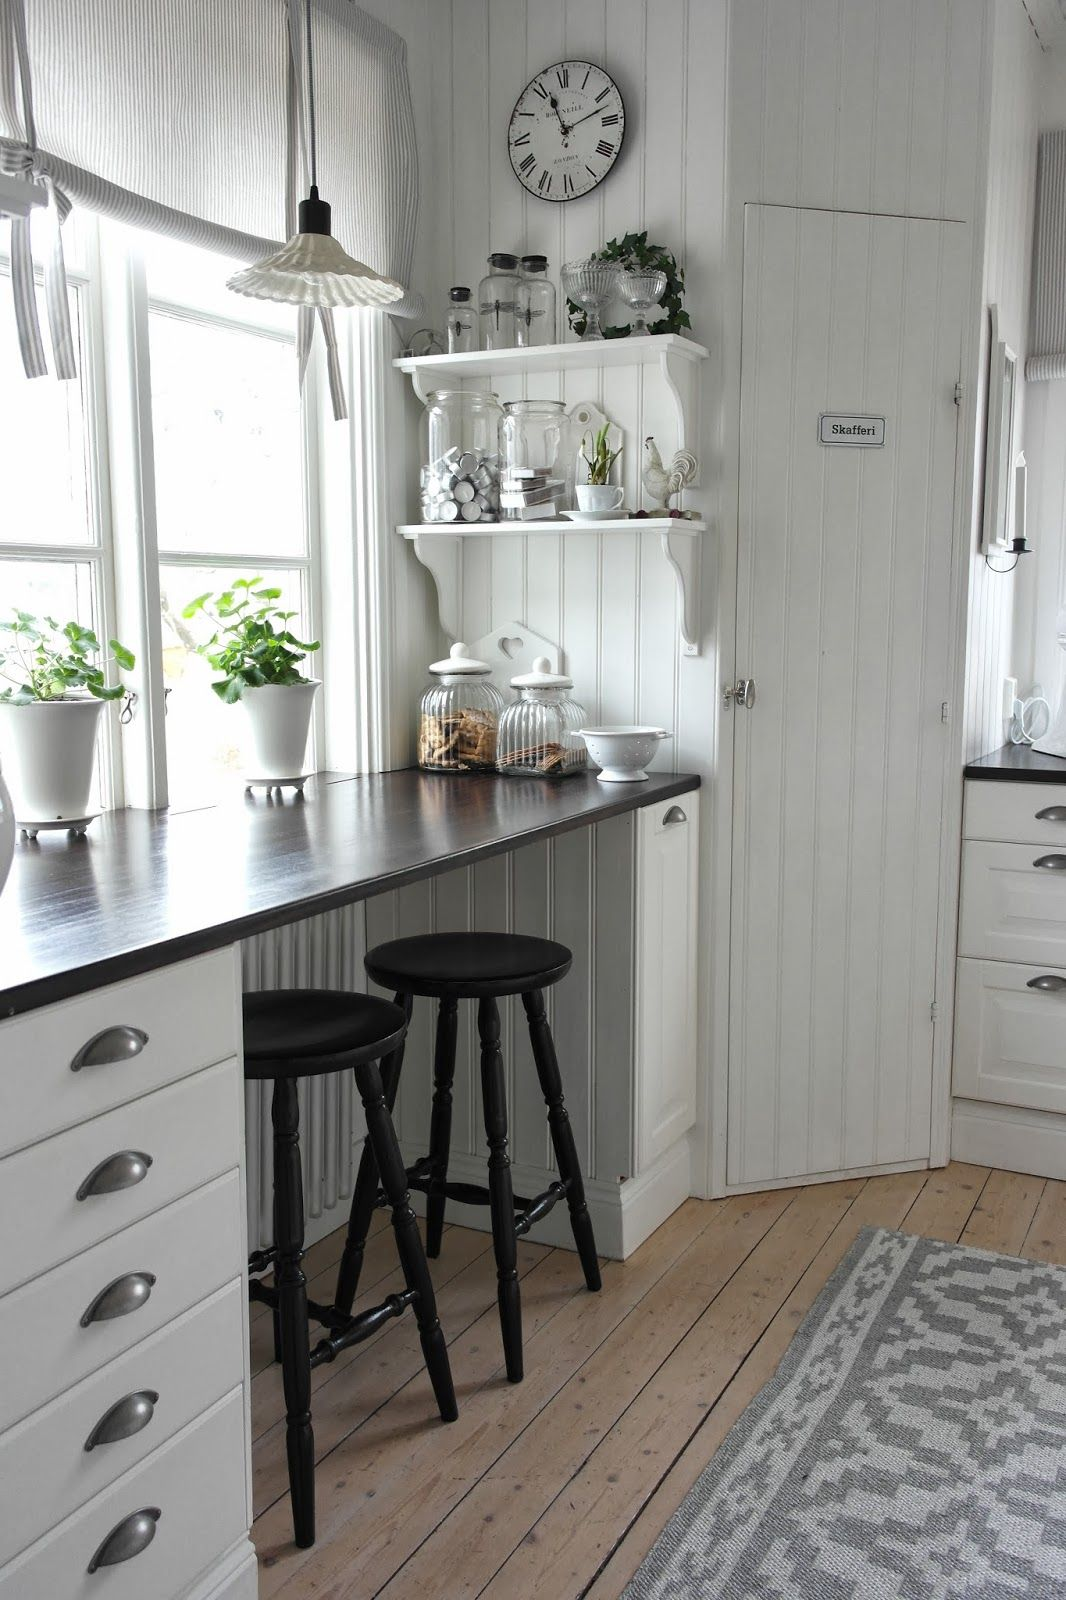 3 panel kitchen window  open shelving next to the stove for most used spices hang spoons